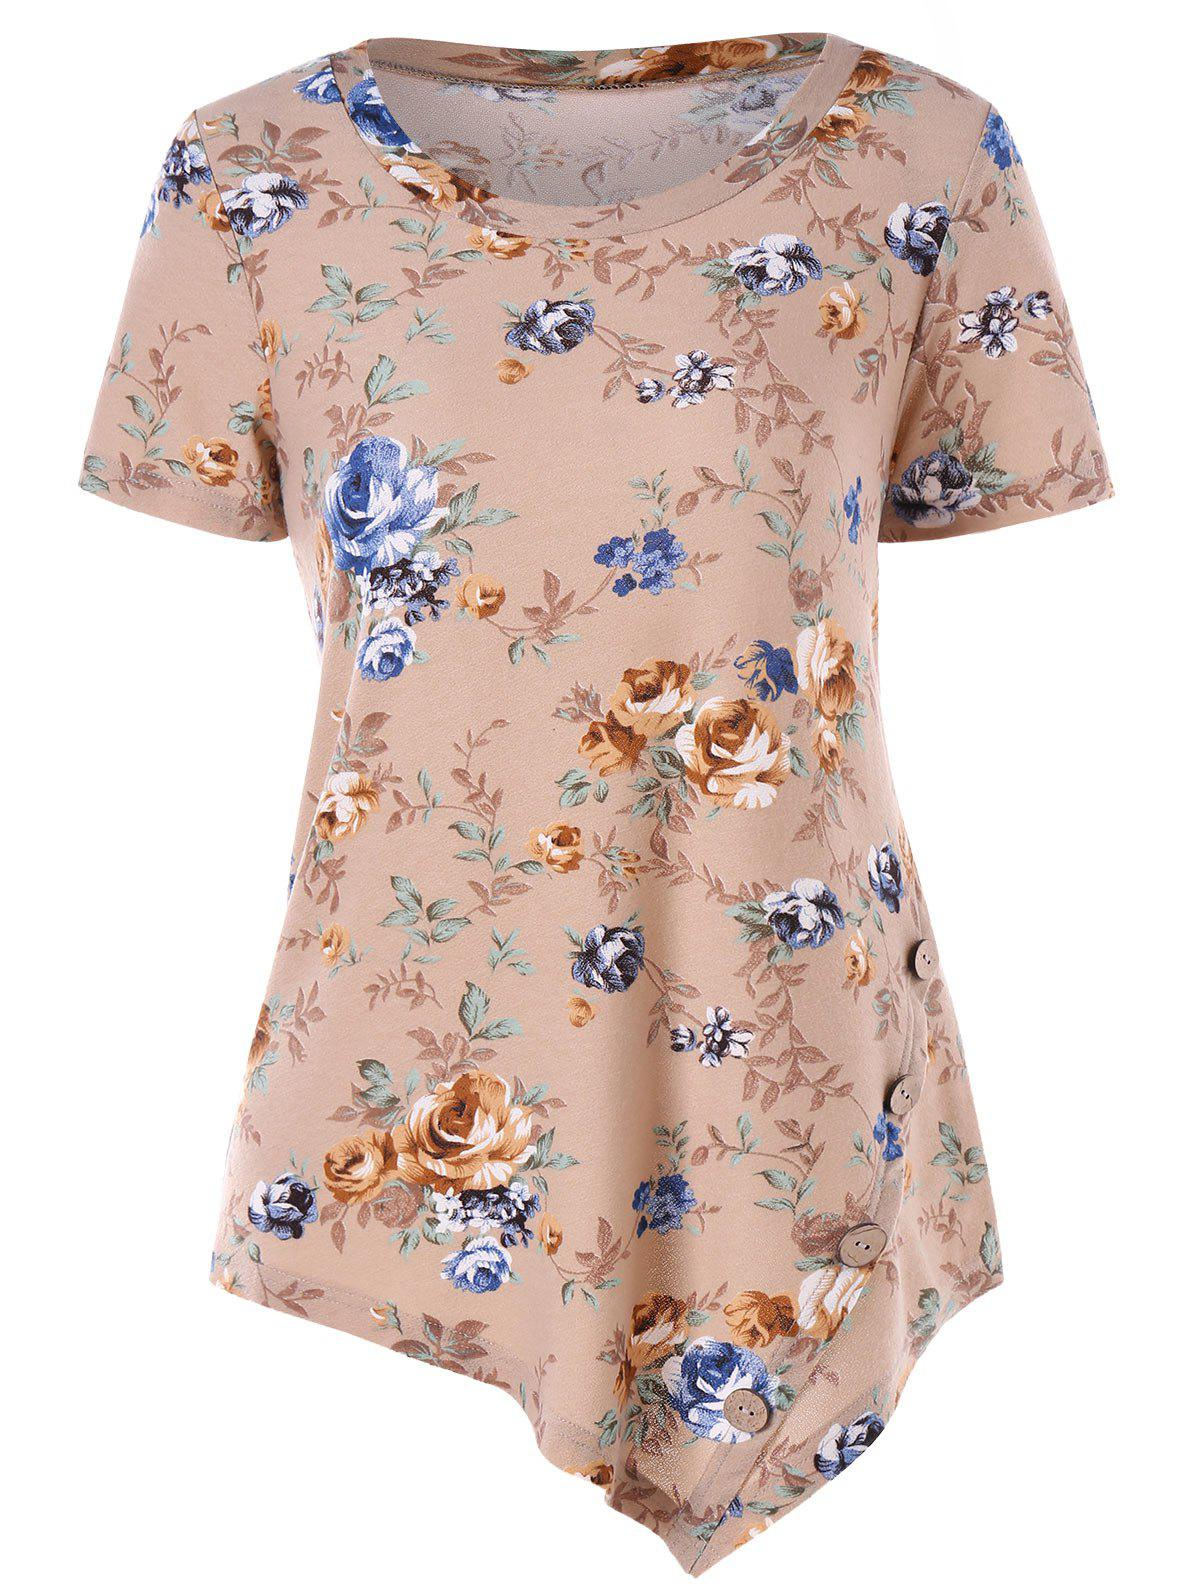 Chic Short Sleeve Floral Print Asymmetrical T-shirt